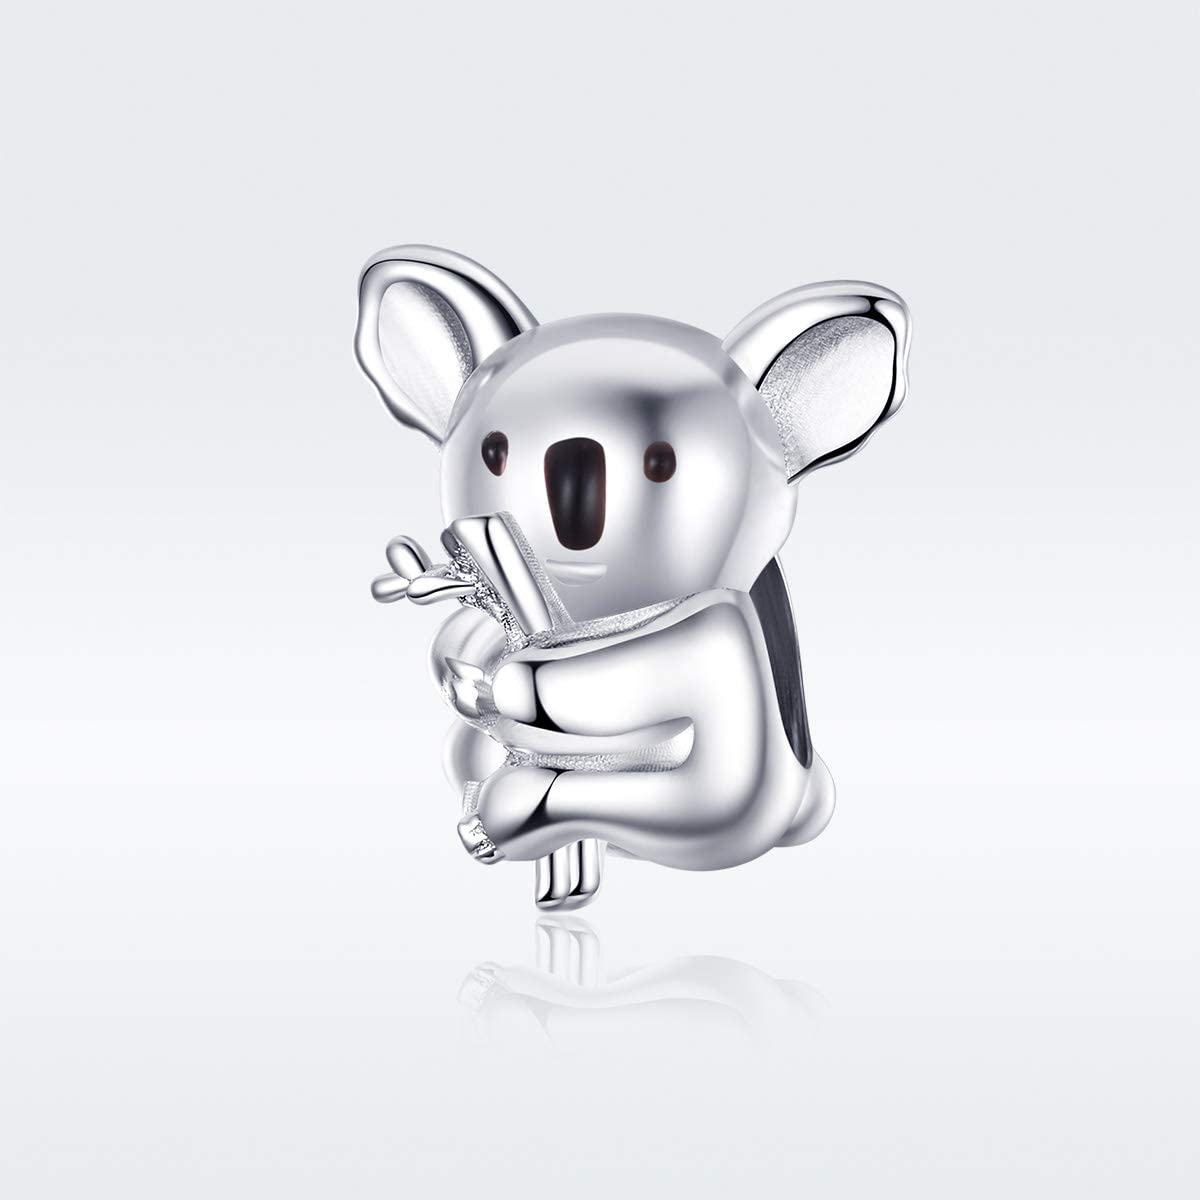 Koala Charms 925 Sterling Silver Animal Zoo Collection Metal Charms Bead  Compatible with Pandora Bracelets Necklace